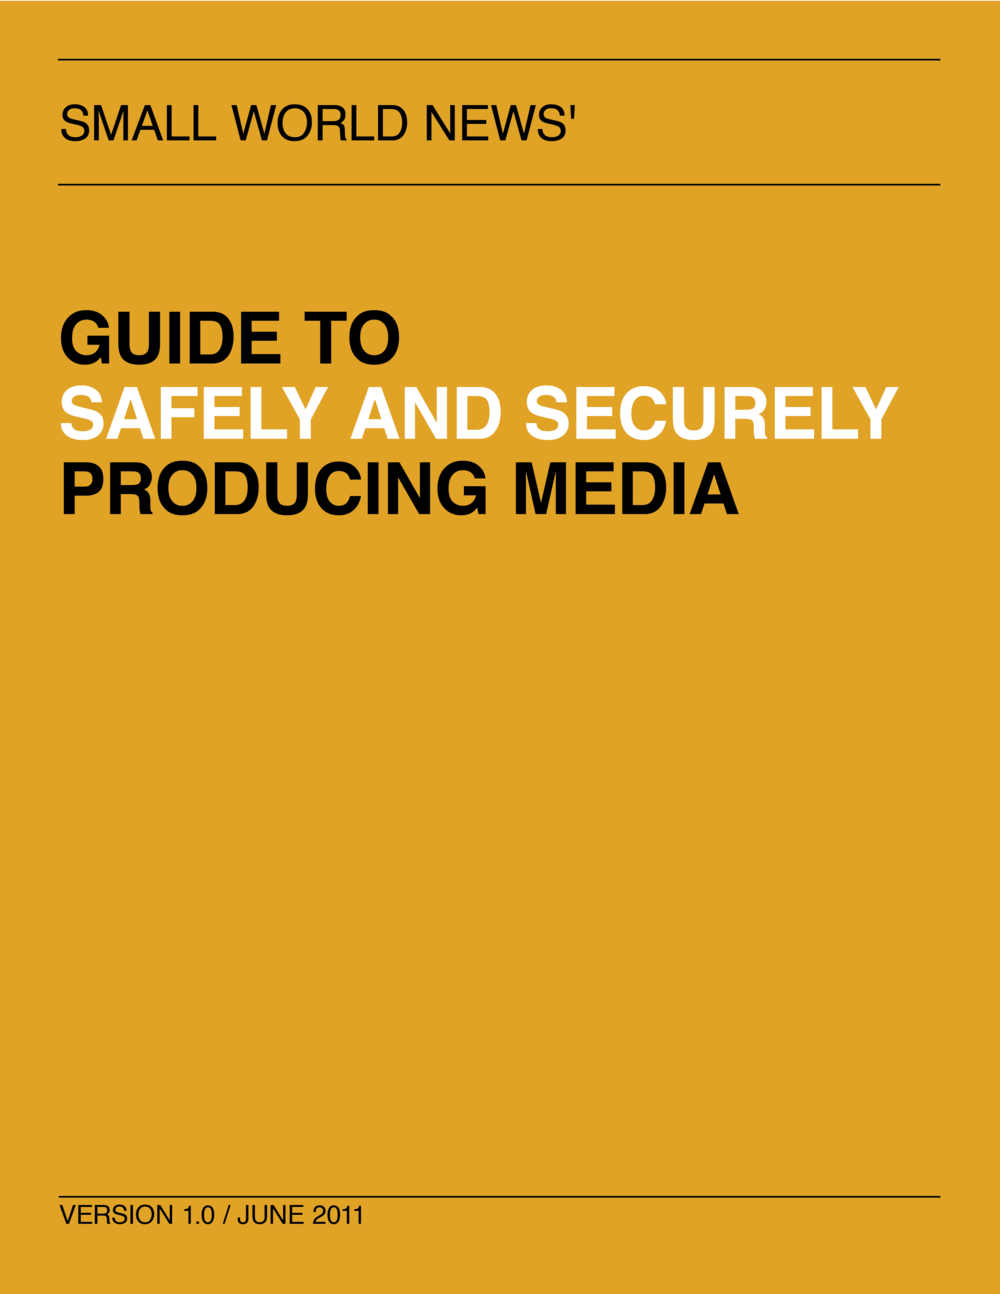 Guide to safely and securely producing media cover